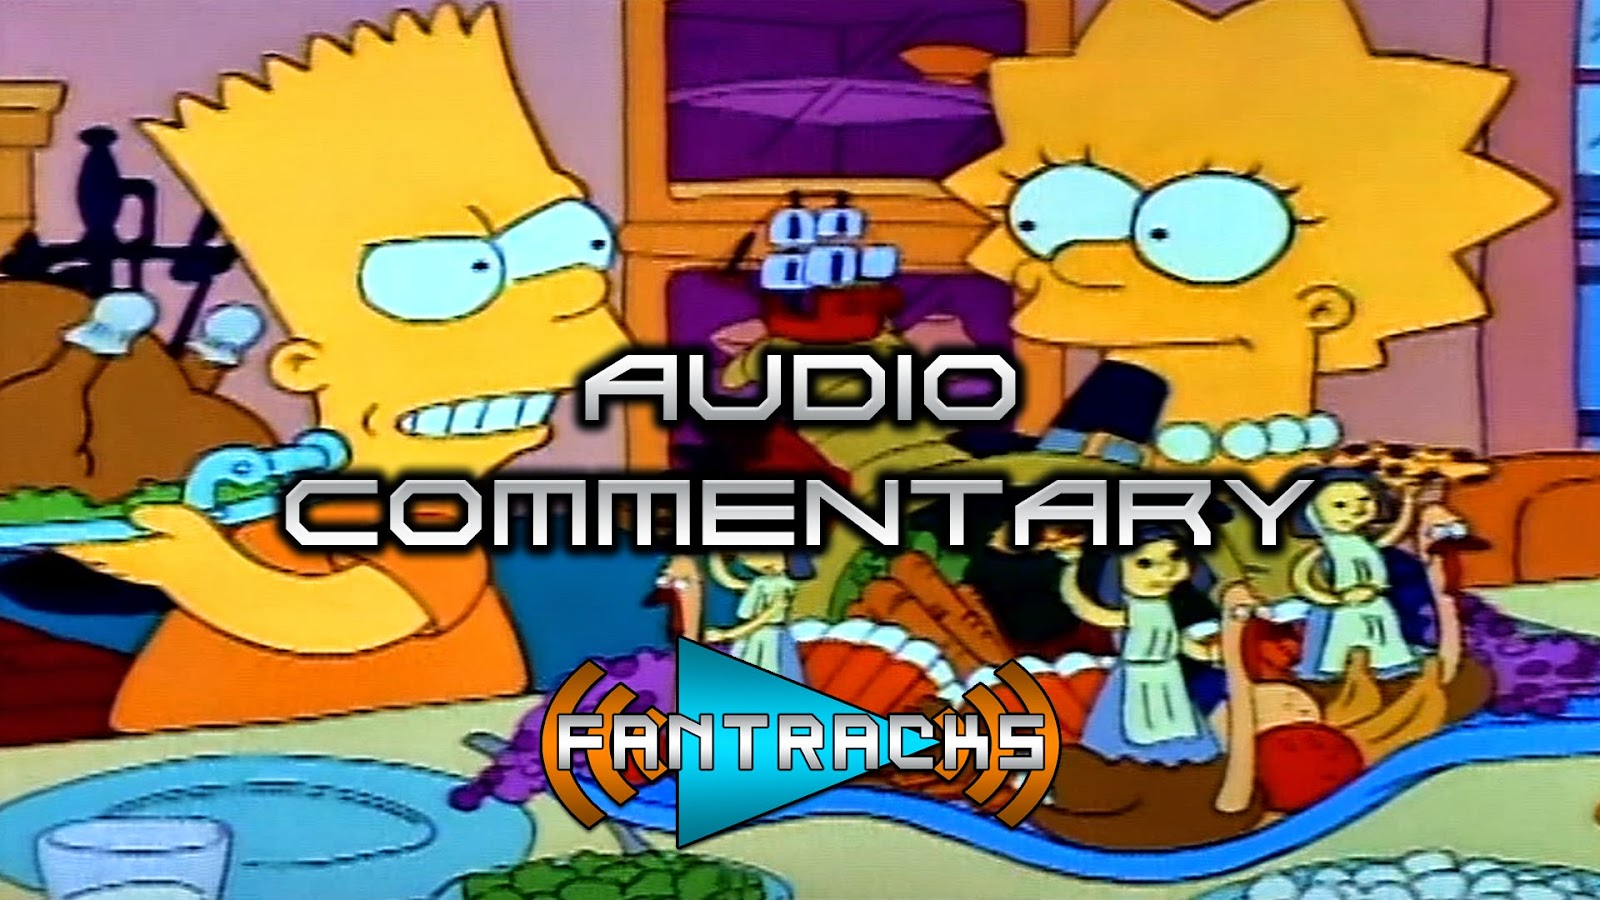 FanTracks Thanksgiving Simpsons audio commentary season 2 episode 7